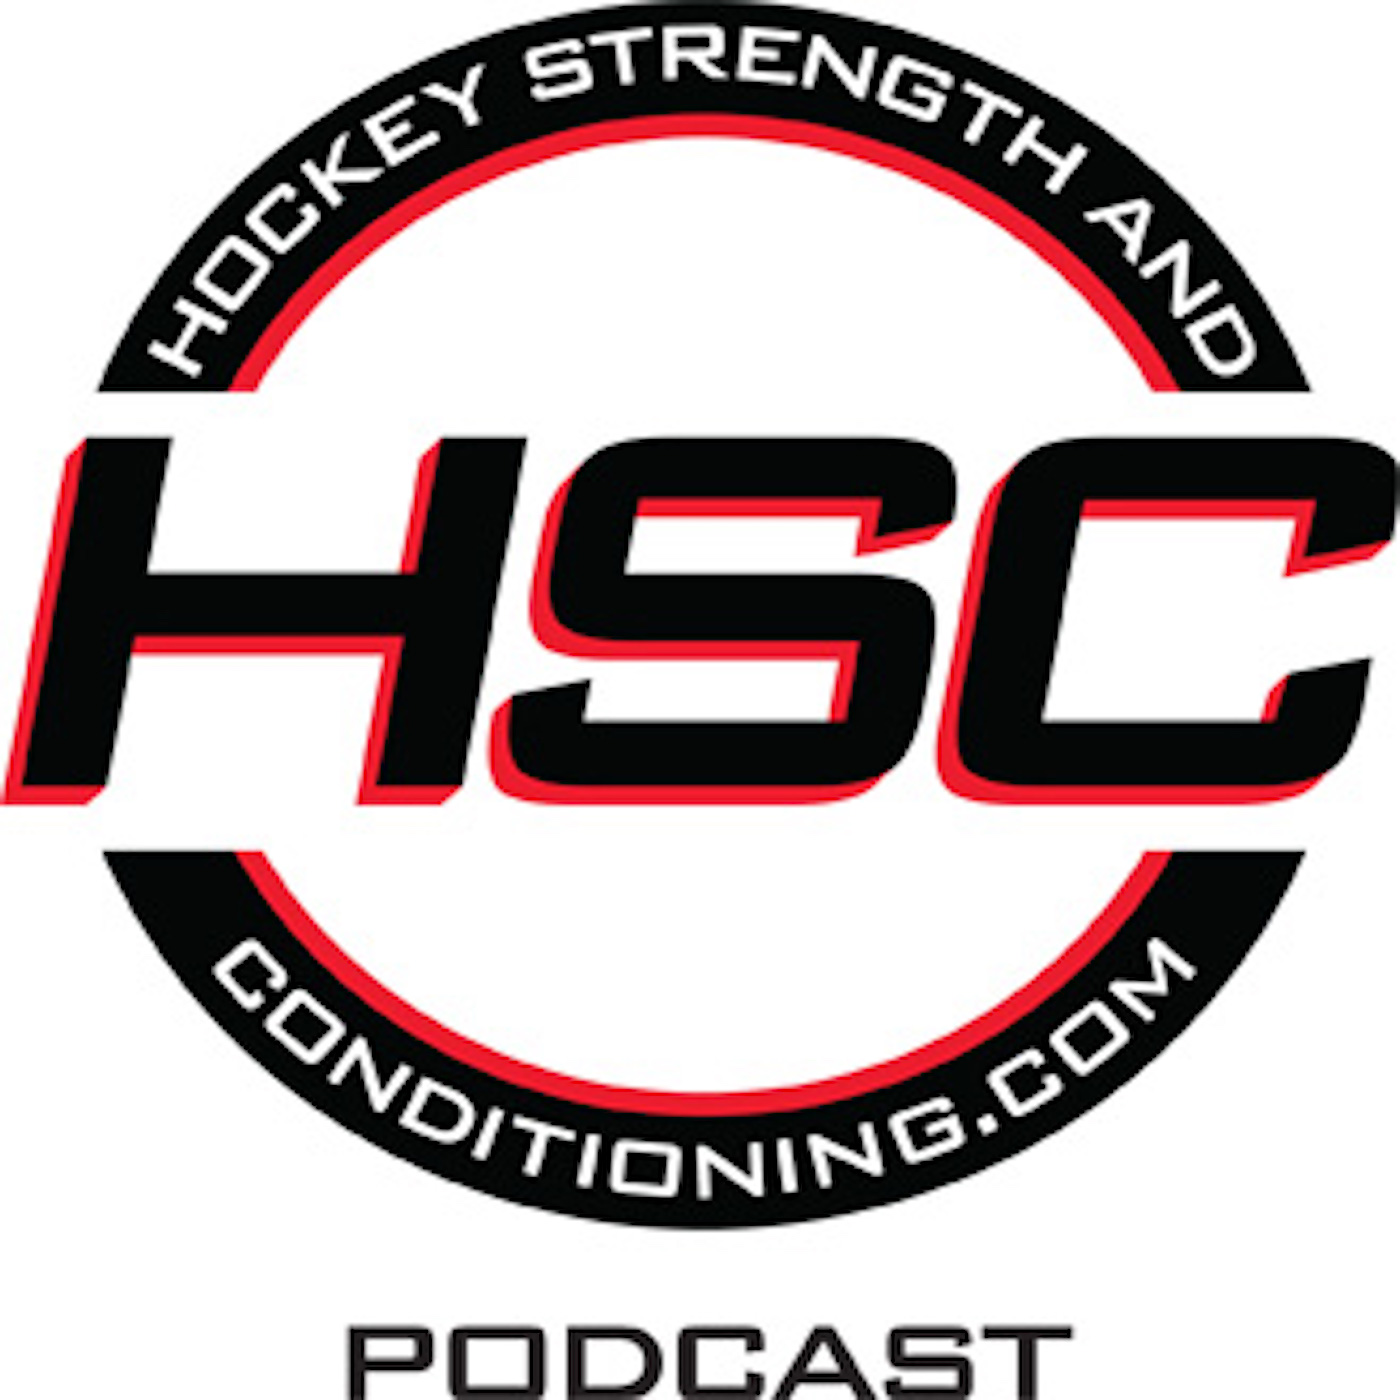 The Hockey Strength Podcast